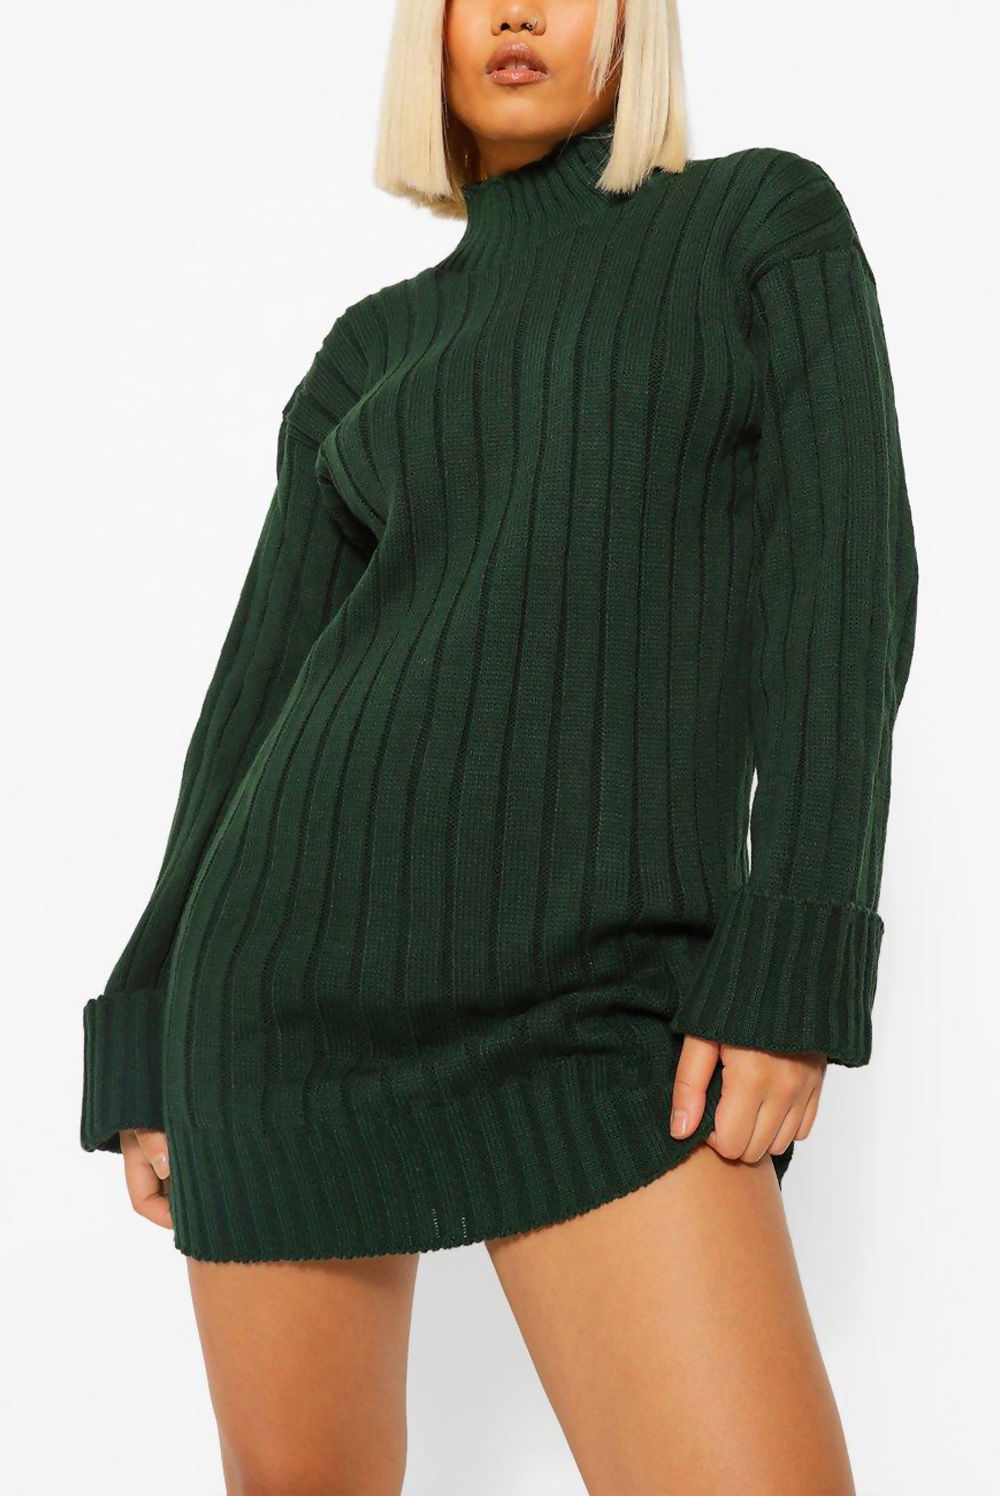 Green oversized rib knit longline jumper featuring wide sleeve turn-up detail.  Perfect for layering paired with our Jax biker leggings.